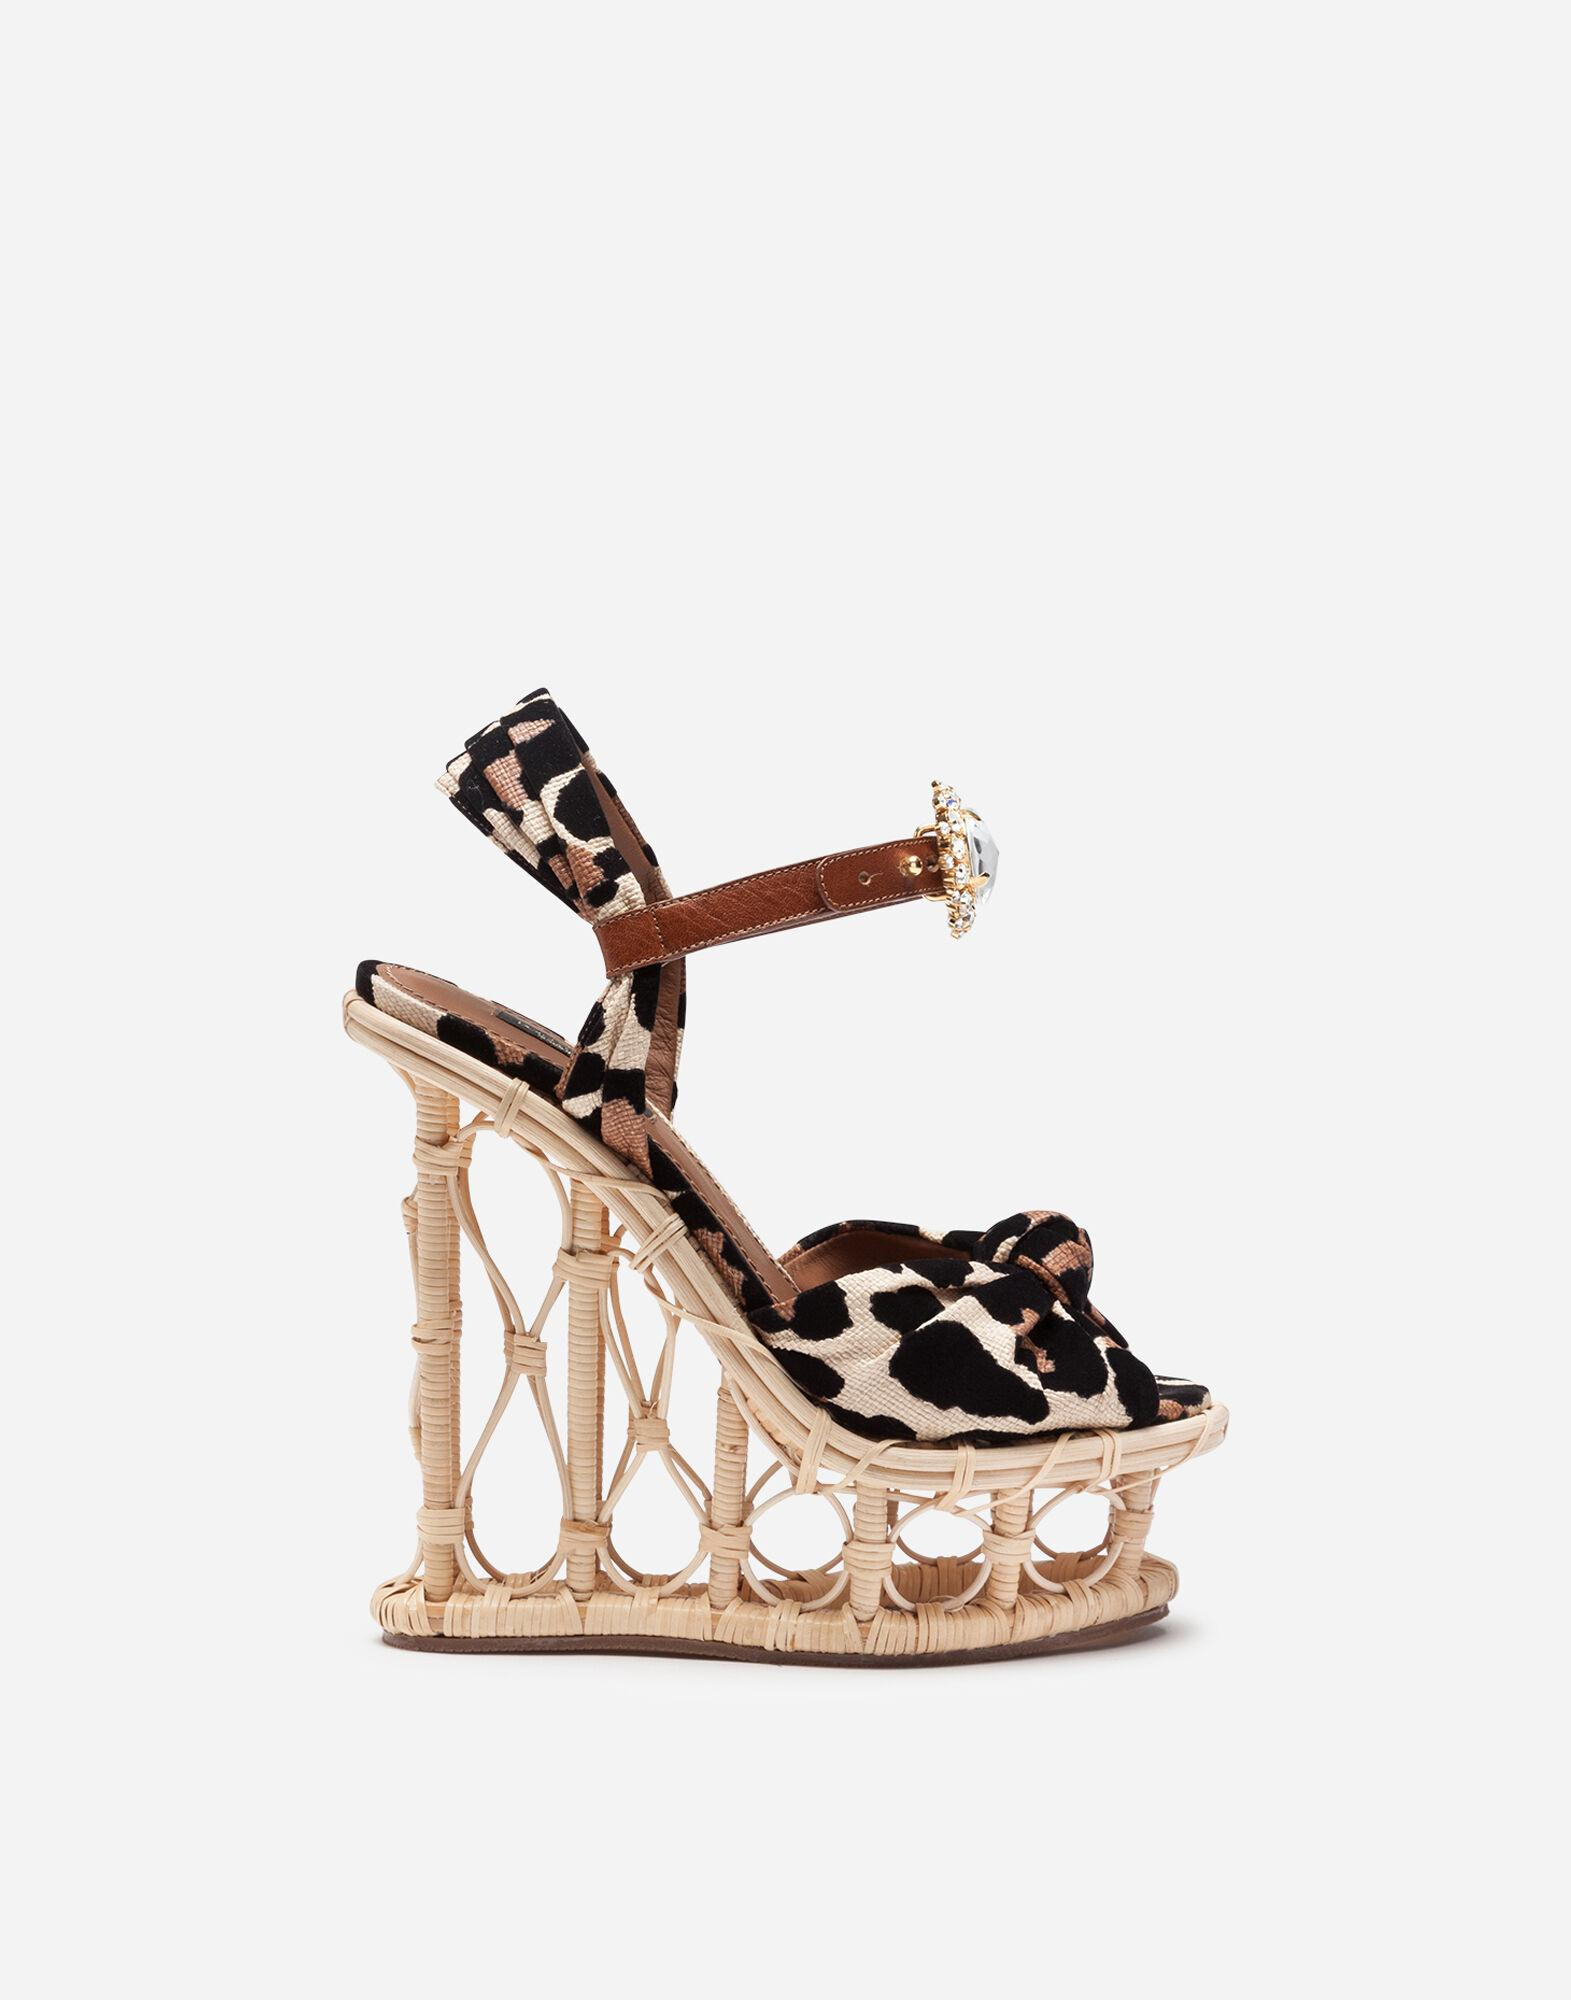 Wedges in wicker and raffia with flocked leopard print and bejeweled buckle